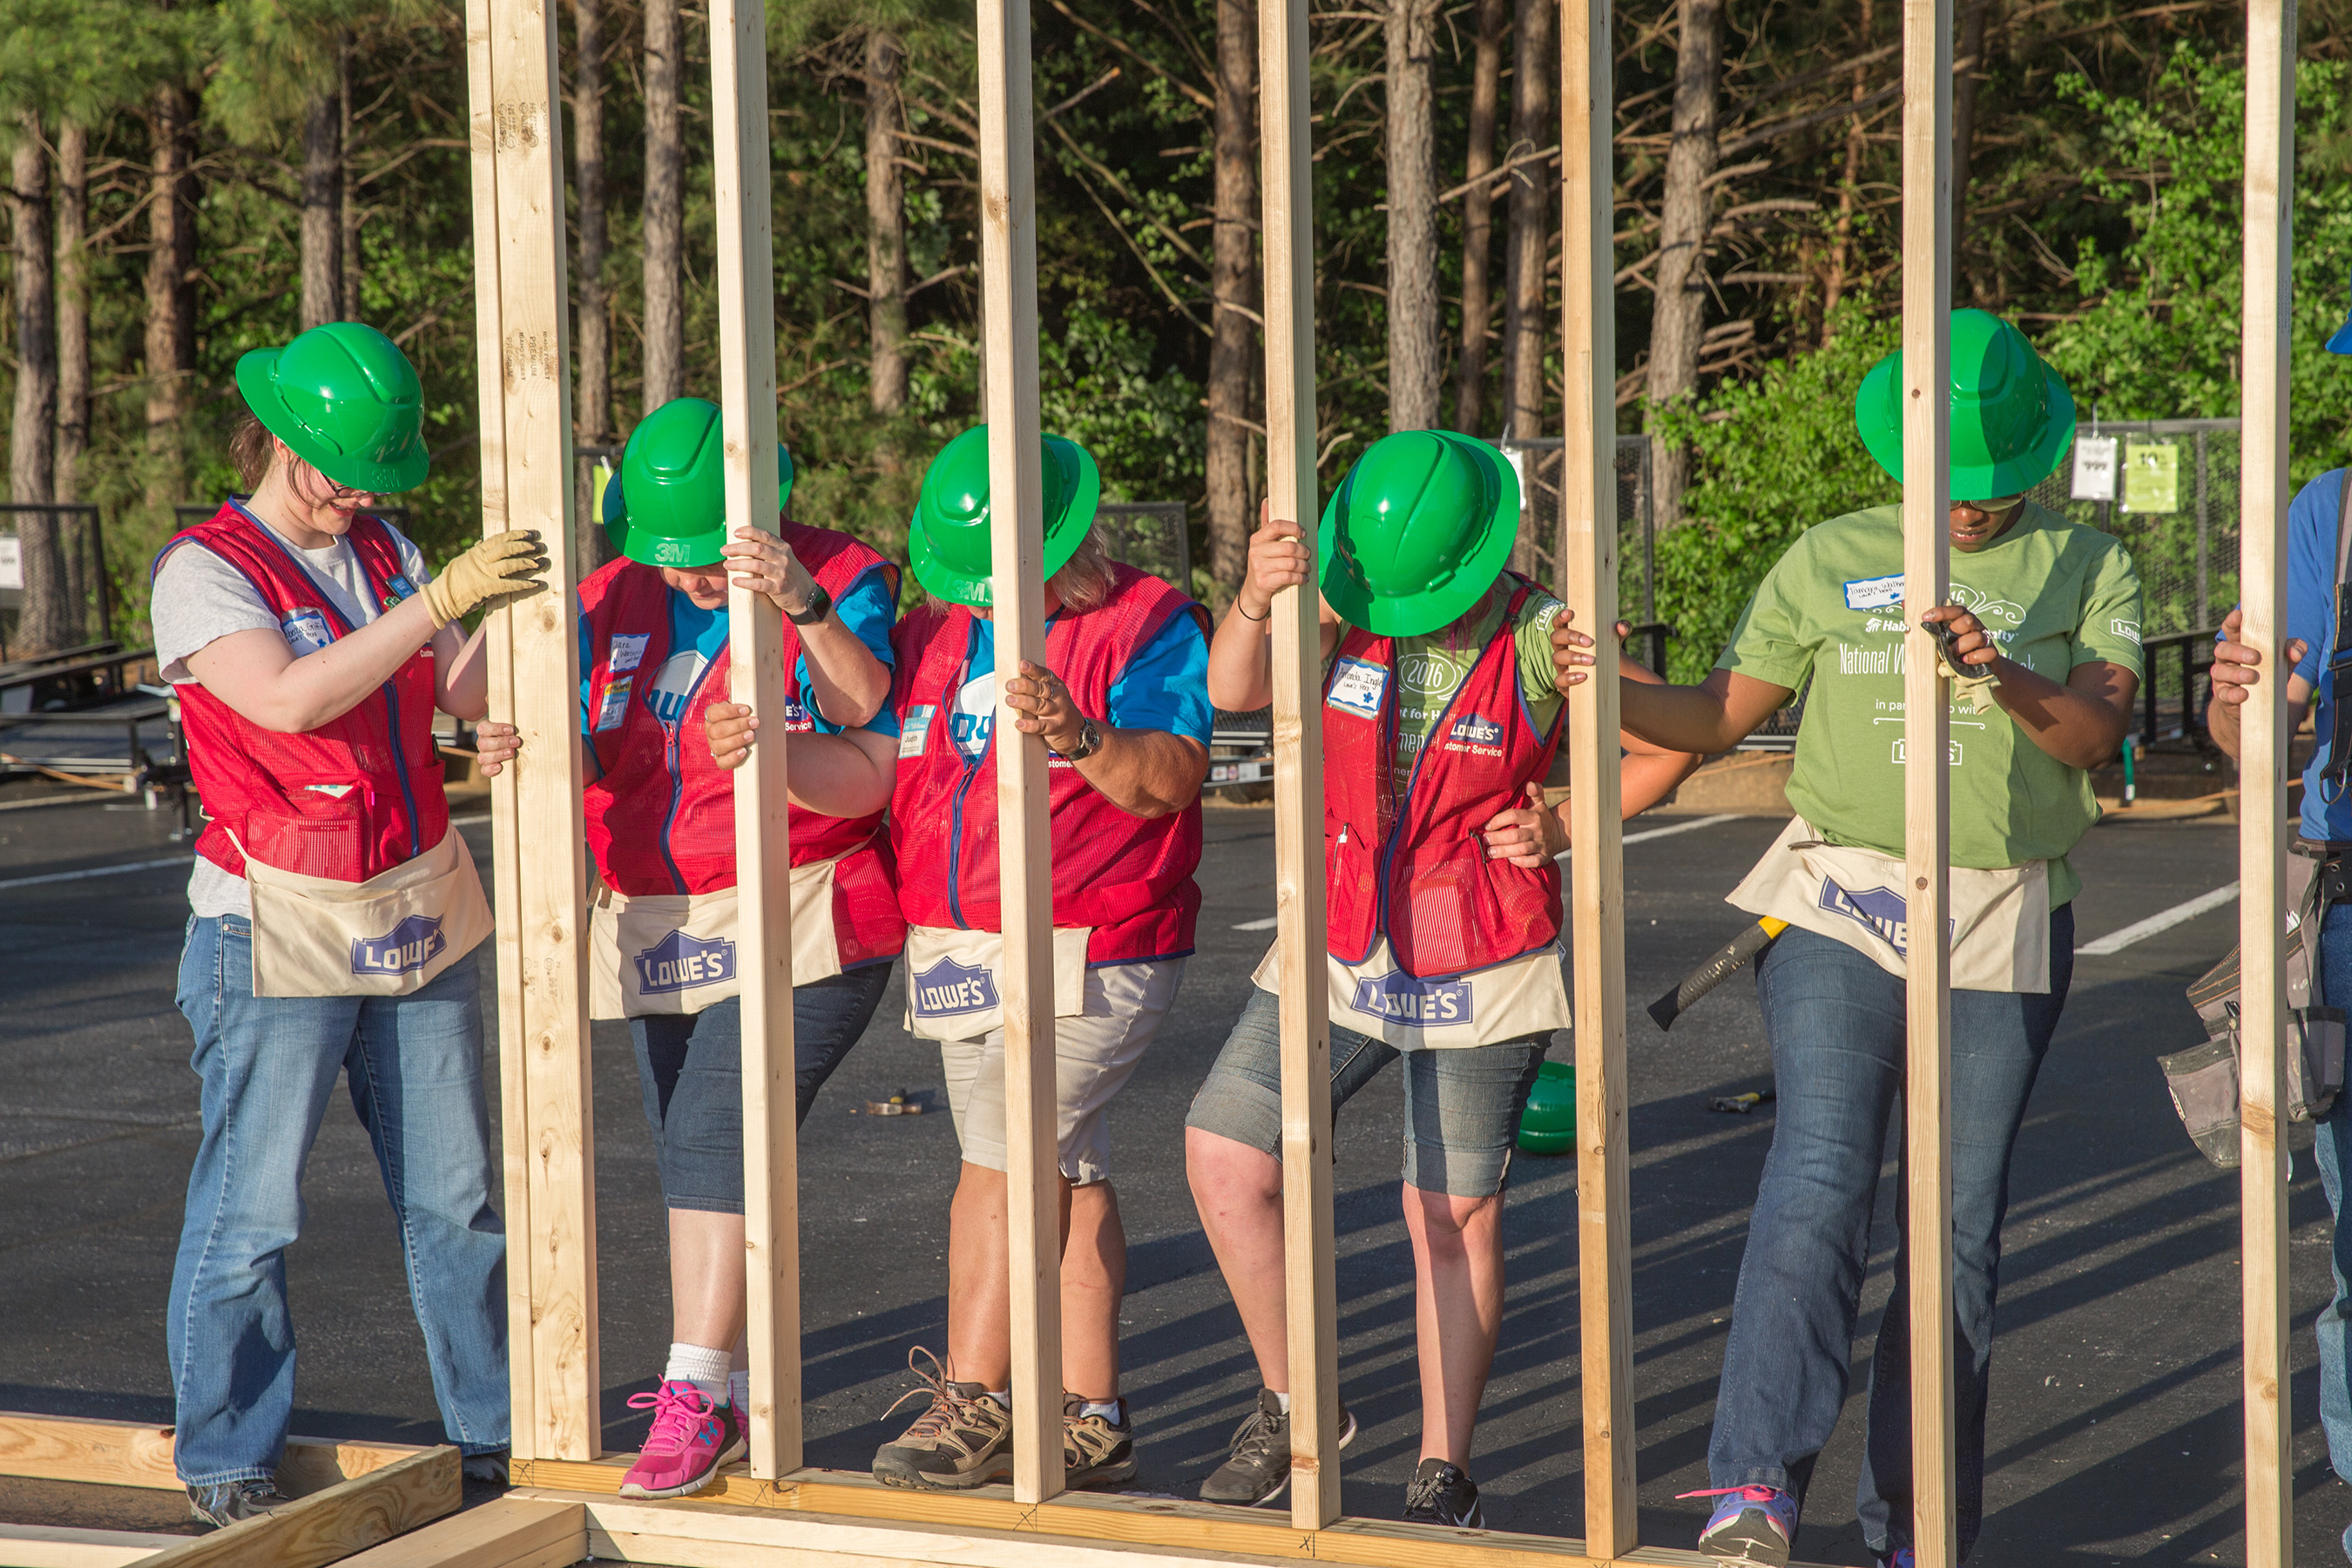 Everyone needs a foundation to build their future. Lowe's and Habitat share the belief that a safe and stable home is a source of strength and security for families. Each year, Lowe's Heroes volunteers help Habitat families build a place they can call home.